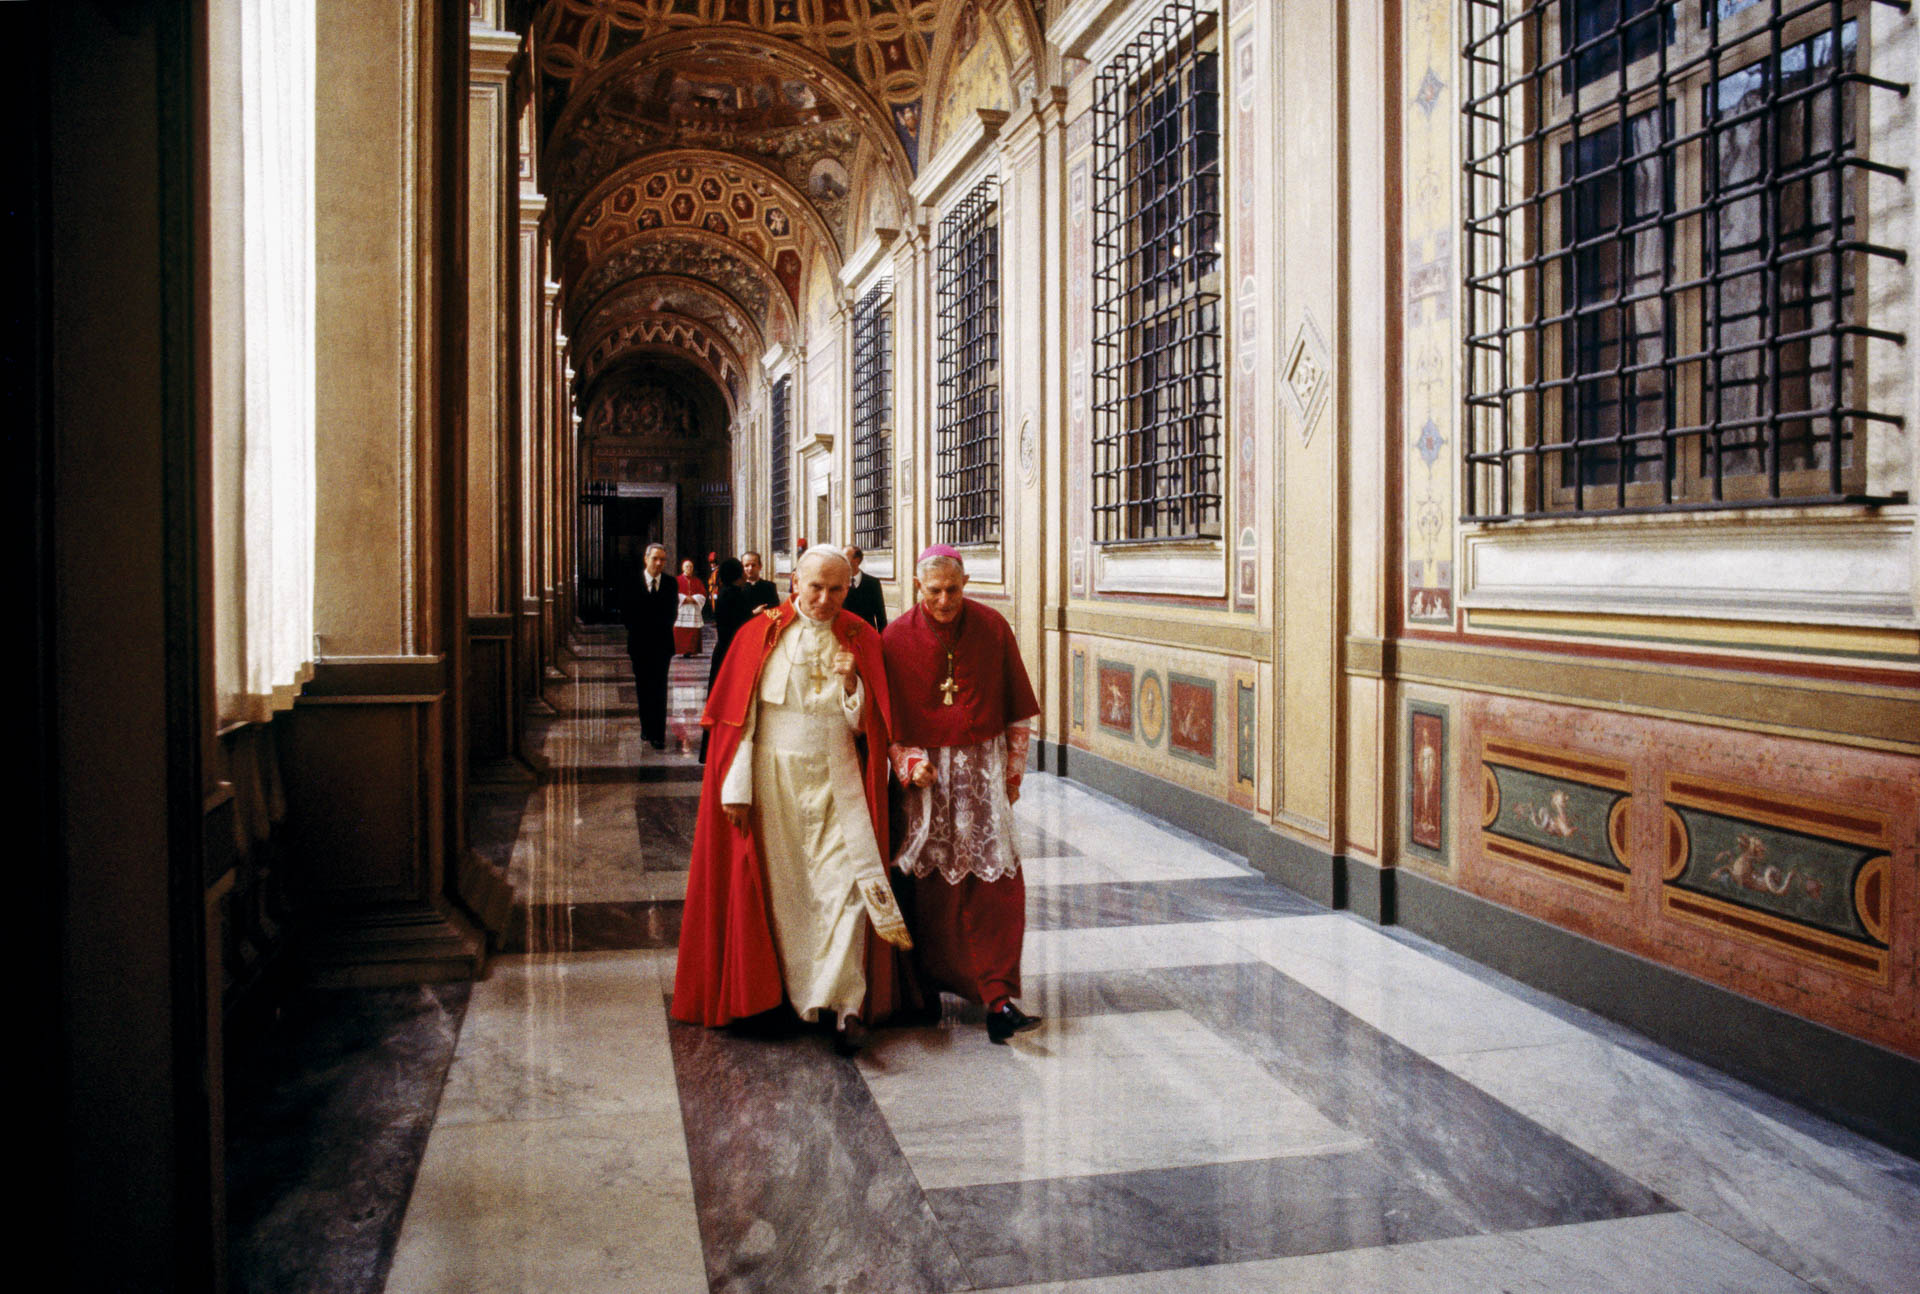 The Vatican - February 1986 A day in the life of the Pope John Paul II in the intimacy of the Vatican: going back to private apartment accompanied by Mons. Jacques Martin through the Raphael Loggia.